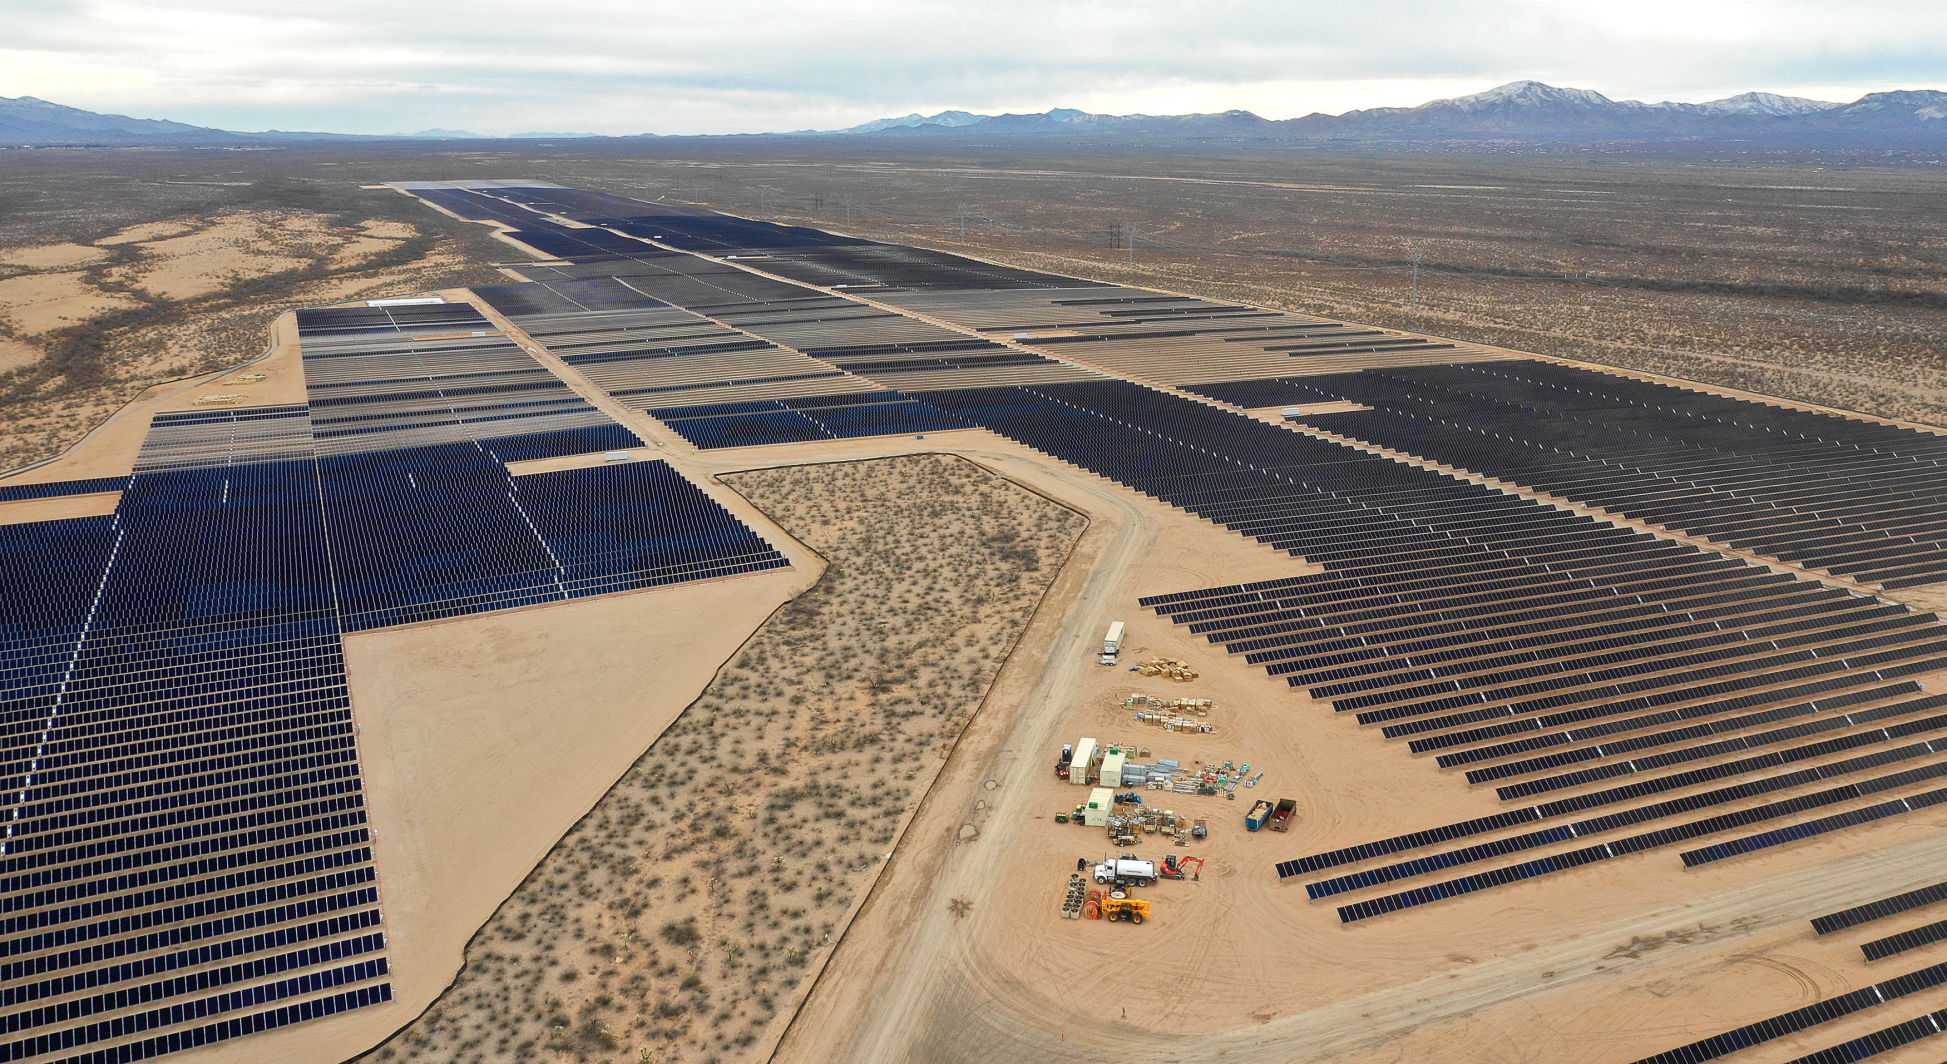 tucson.com - By Howard Fischer Capitol Media Services - Arizona lawmakers move to strip commission from mandating use of renewable energy